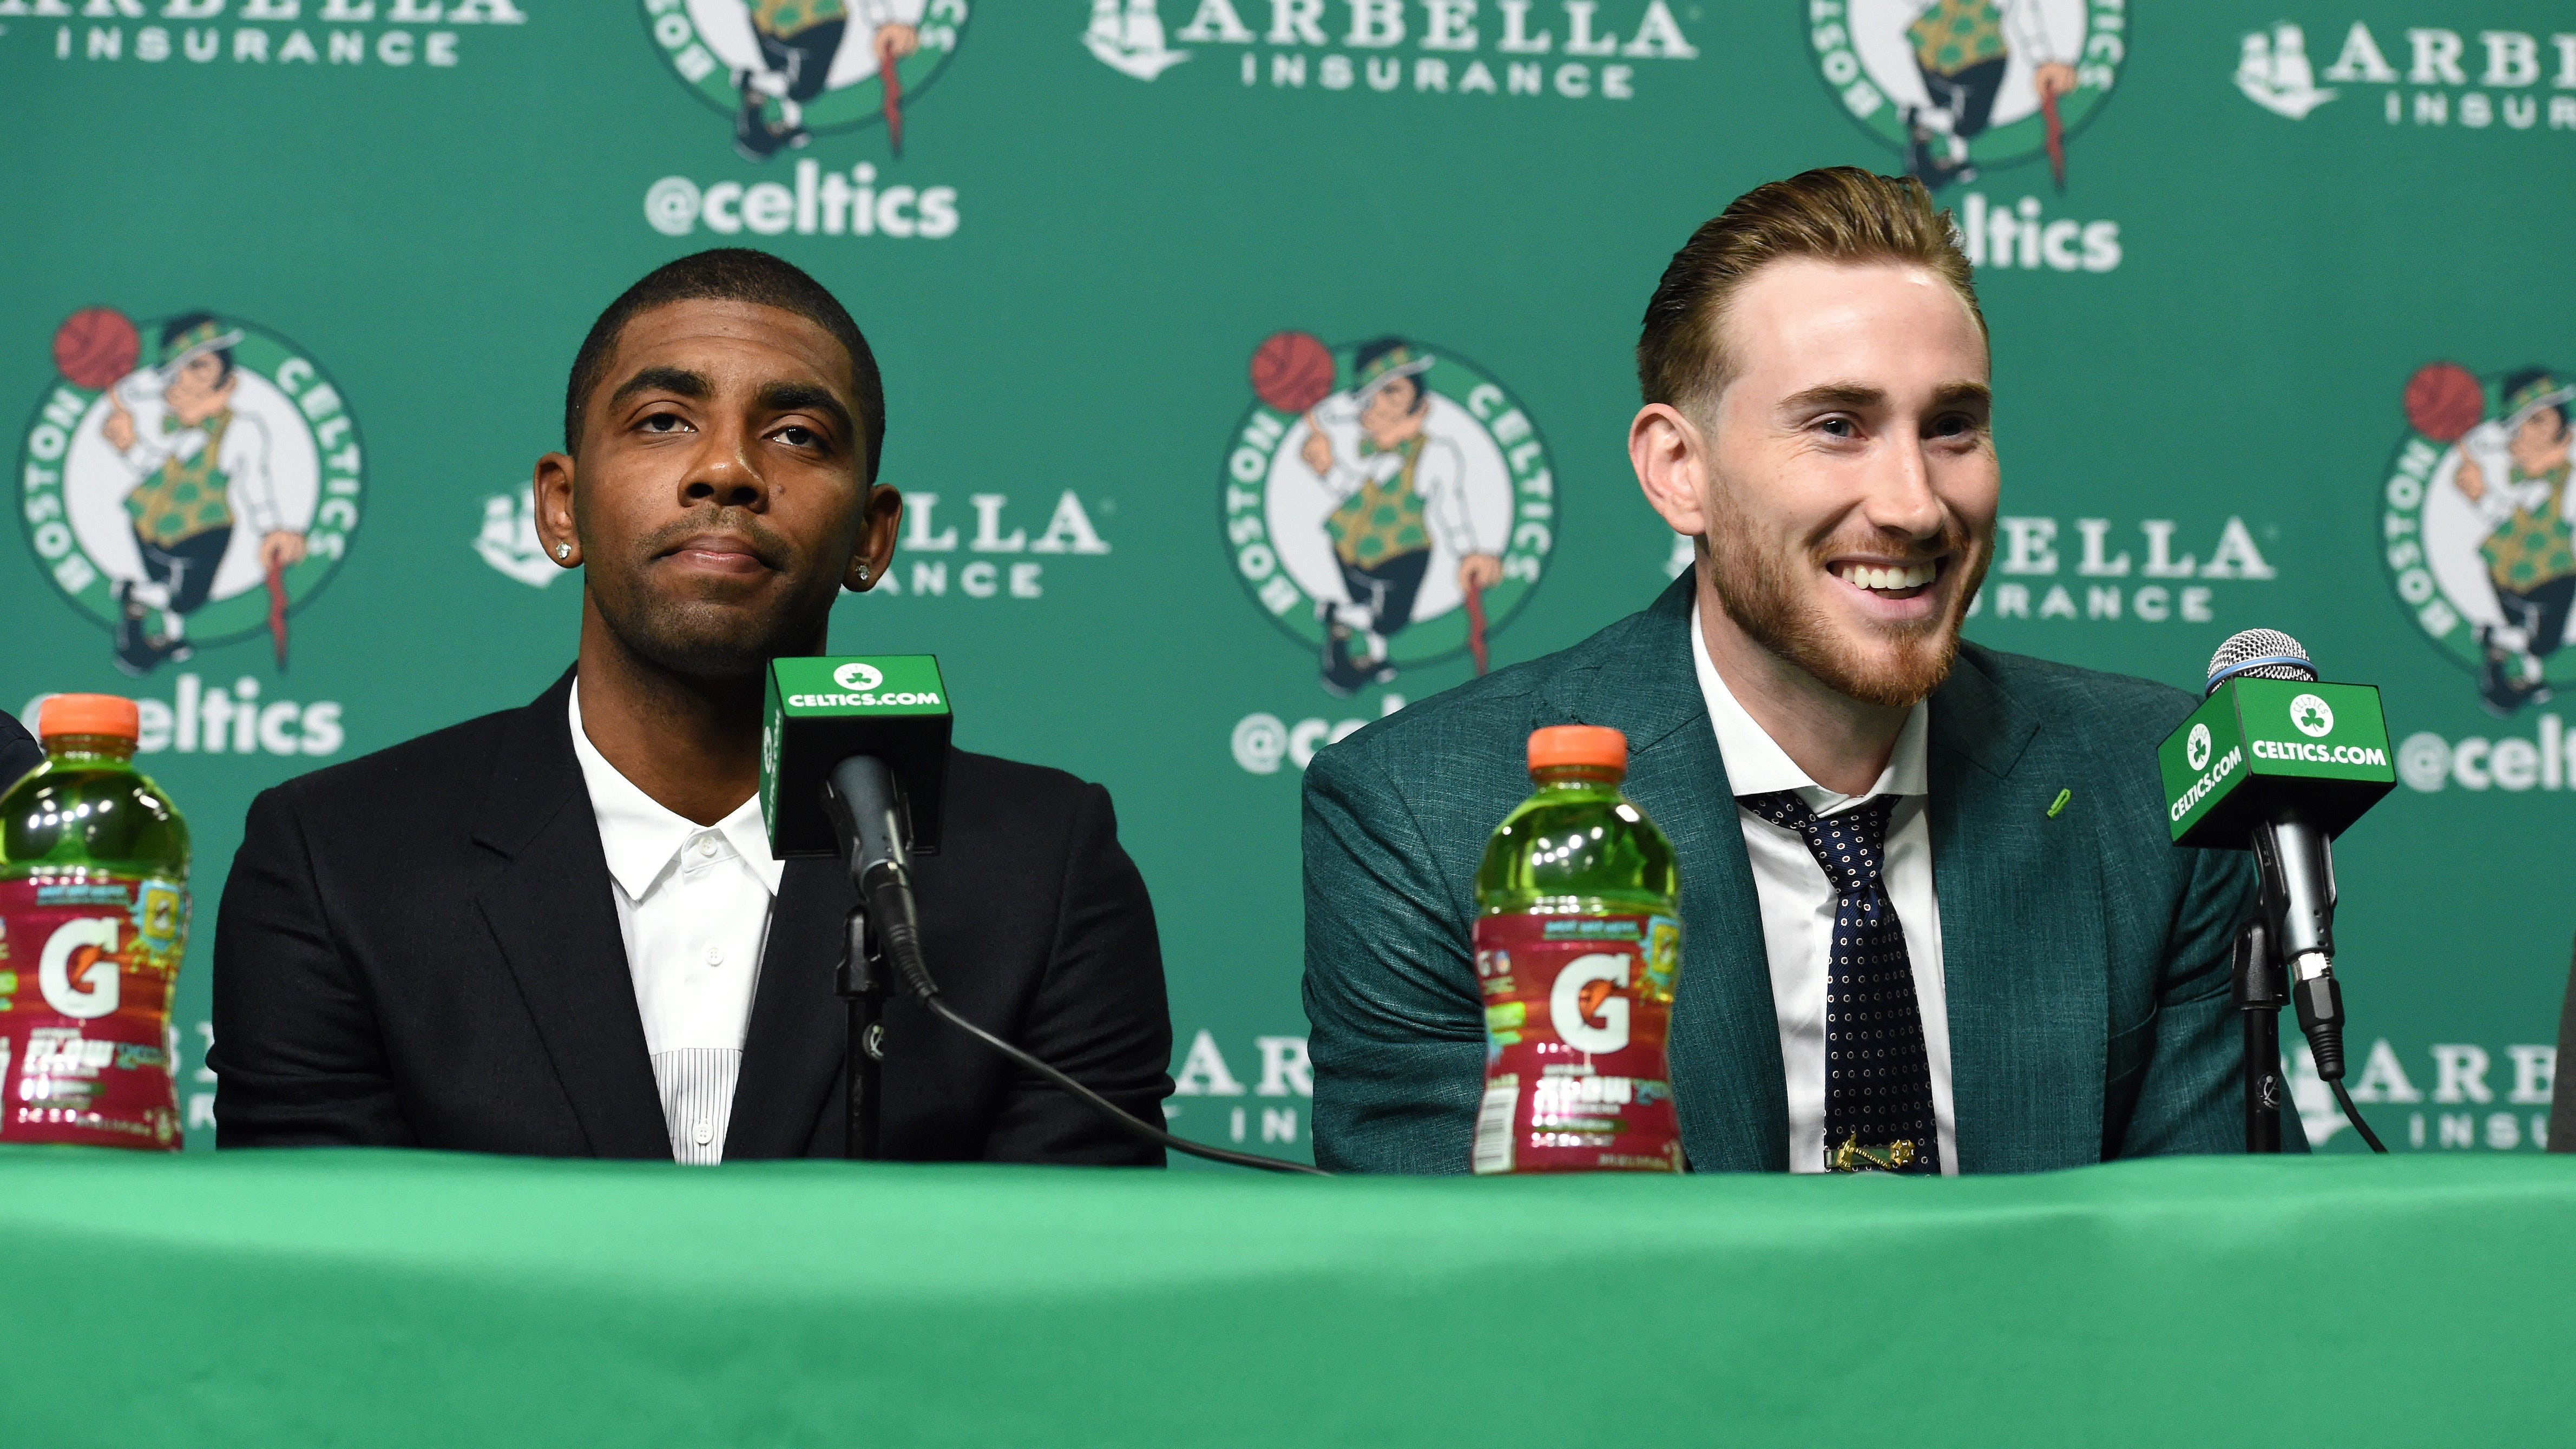 When the Celtics introduced Kyrie Irving (left) and Gordon Hayward before the 2017-18 season, they were expected to return the Celtics to their glory days. But injuries to both Hayward and Irving, as well as other factors, helped to derail those expectations.